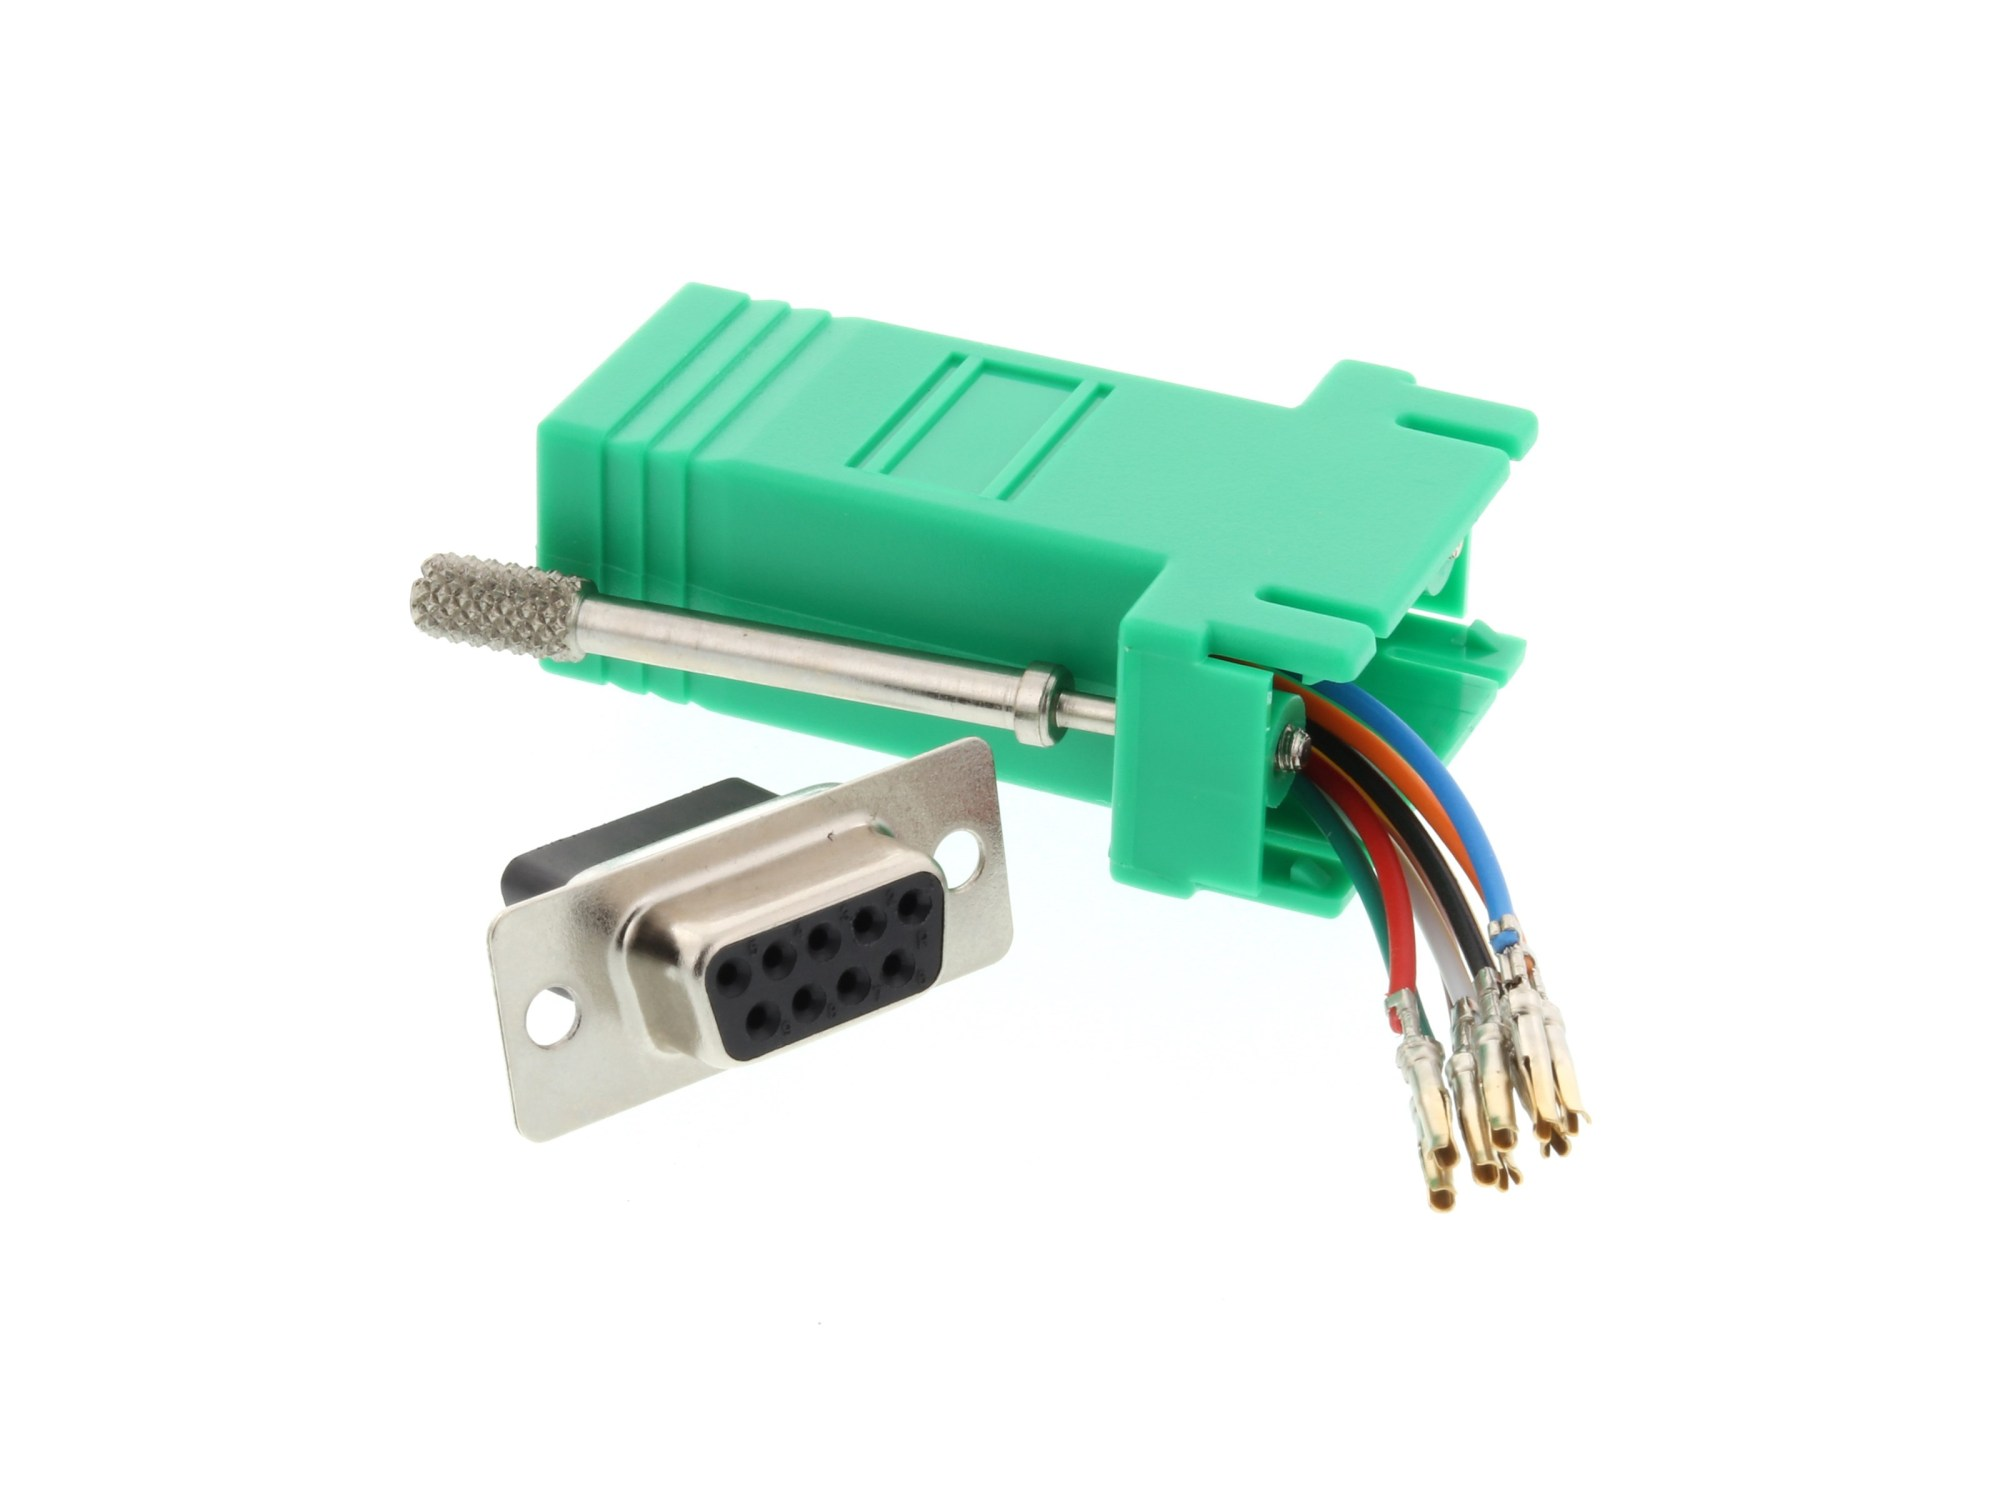 hight resolution of  picture of modular adapter kit db9 female to rj45 green